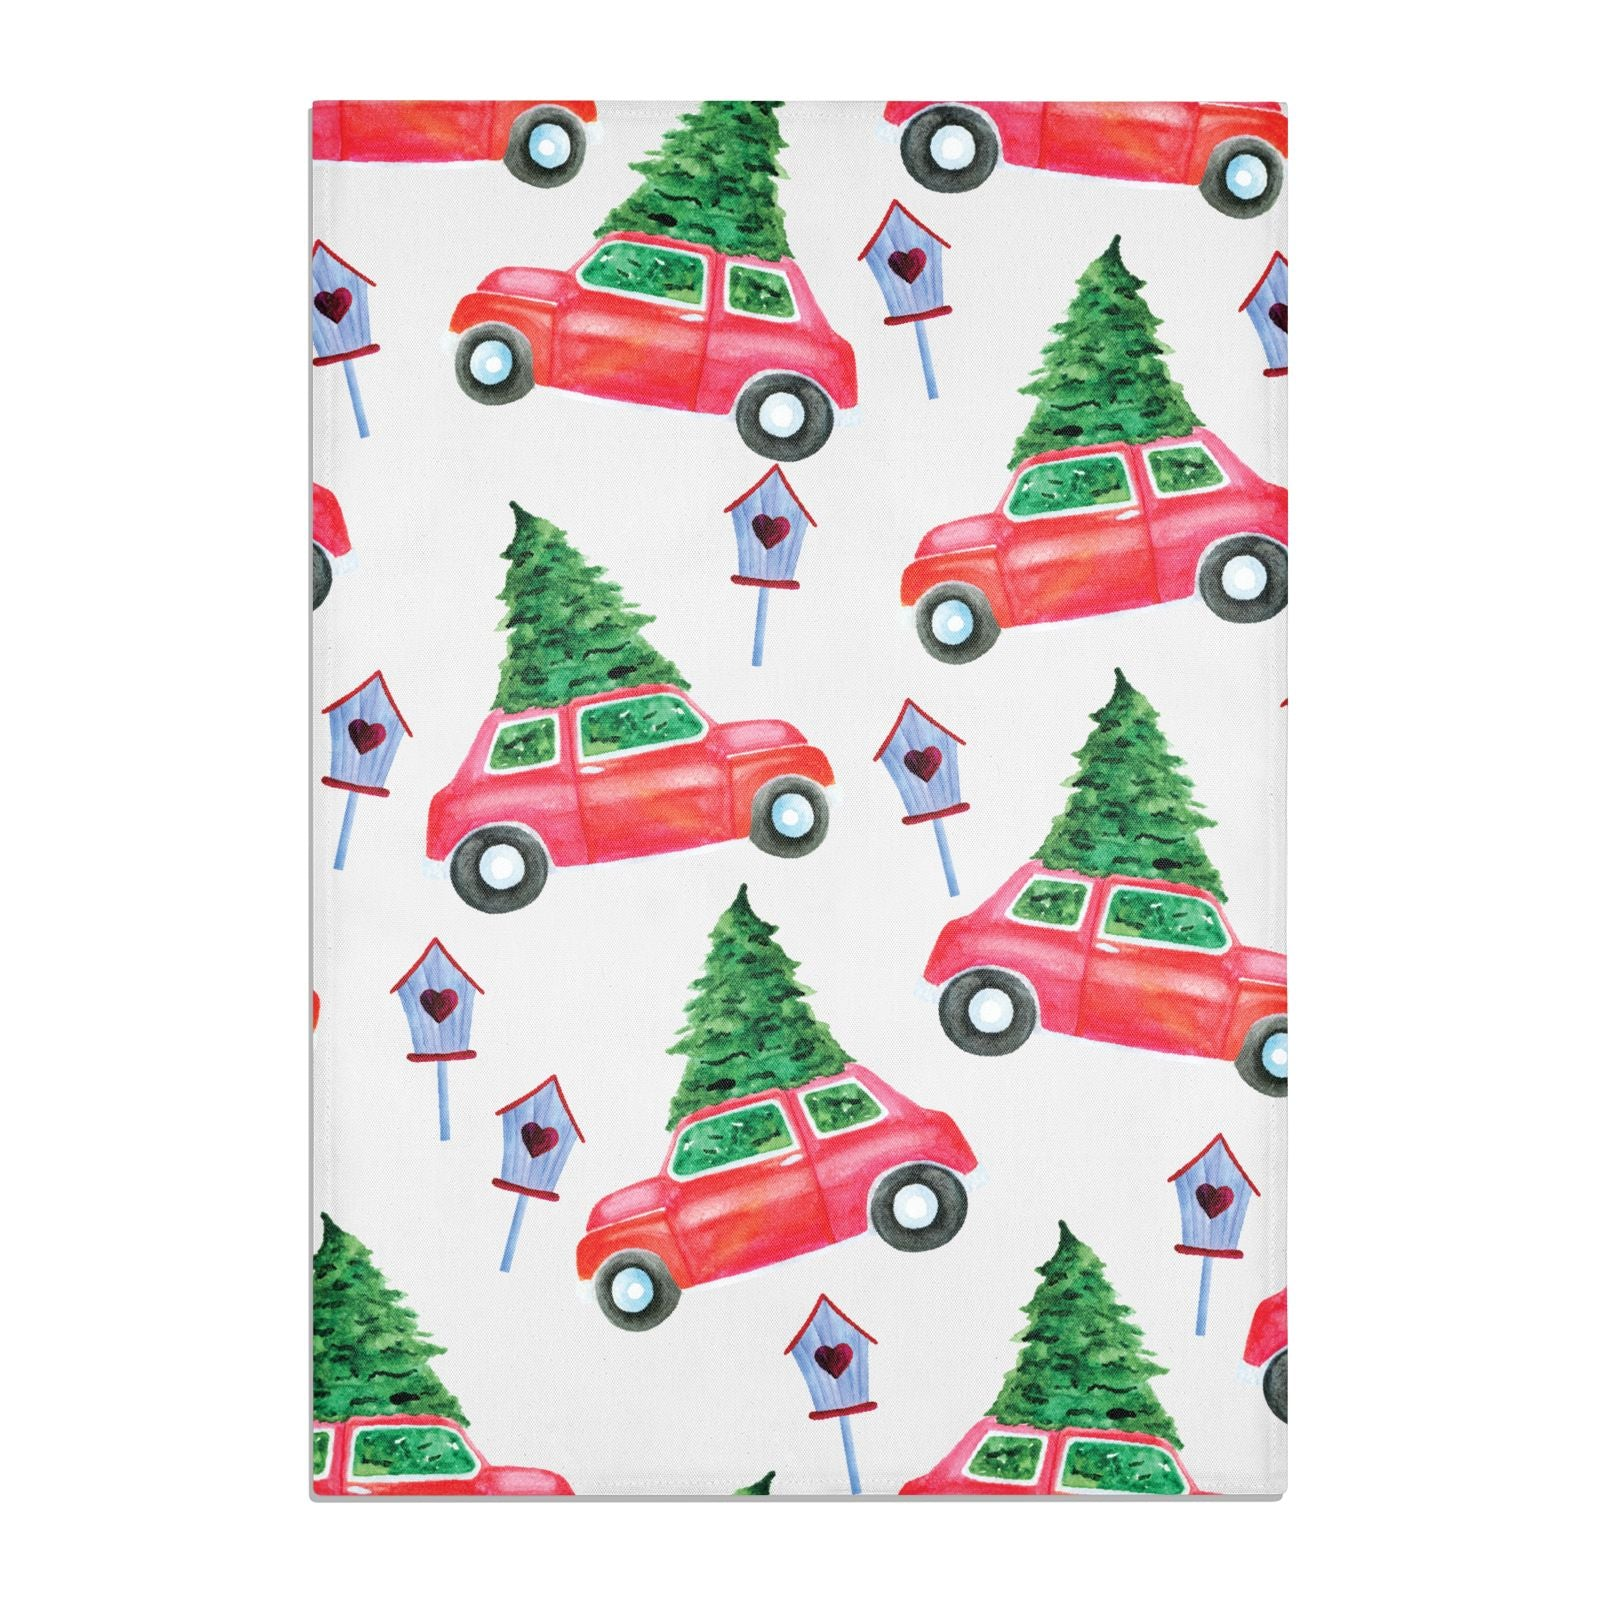 Driving home for Christmas Cotton Tea Towel